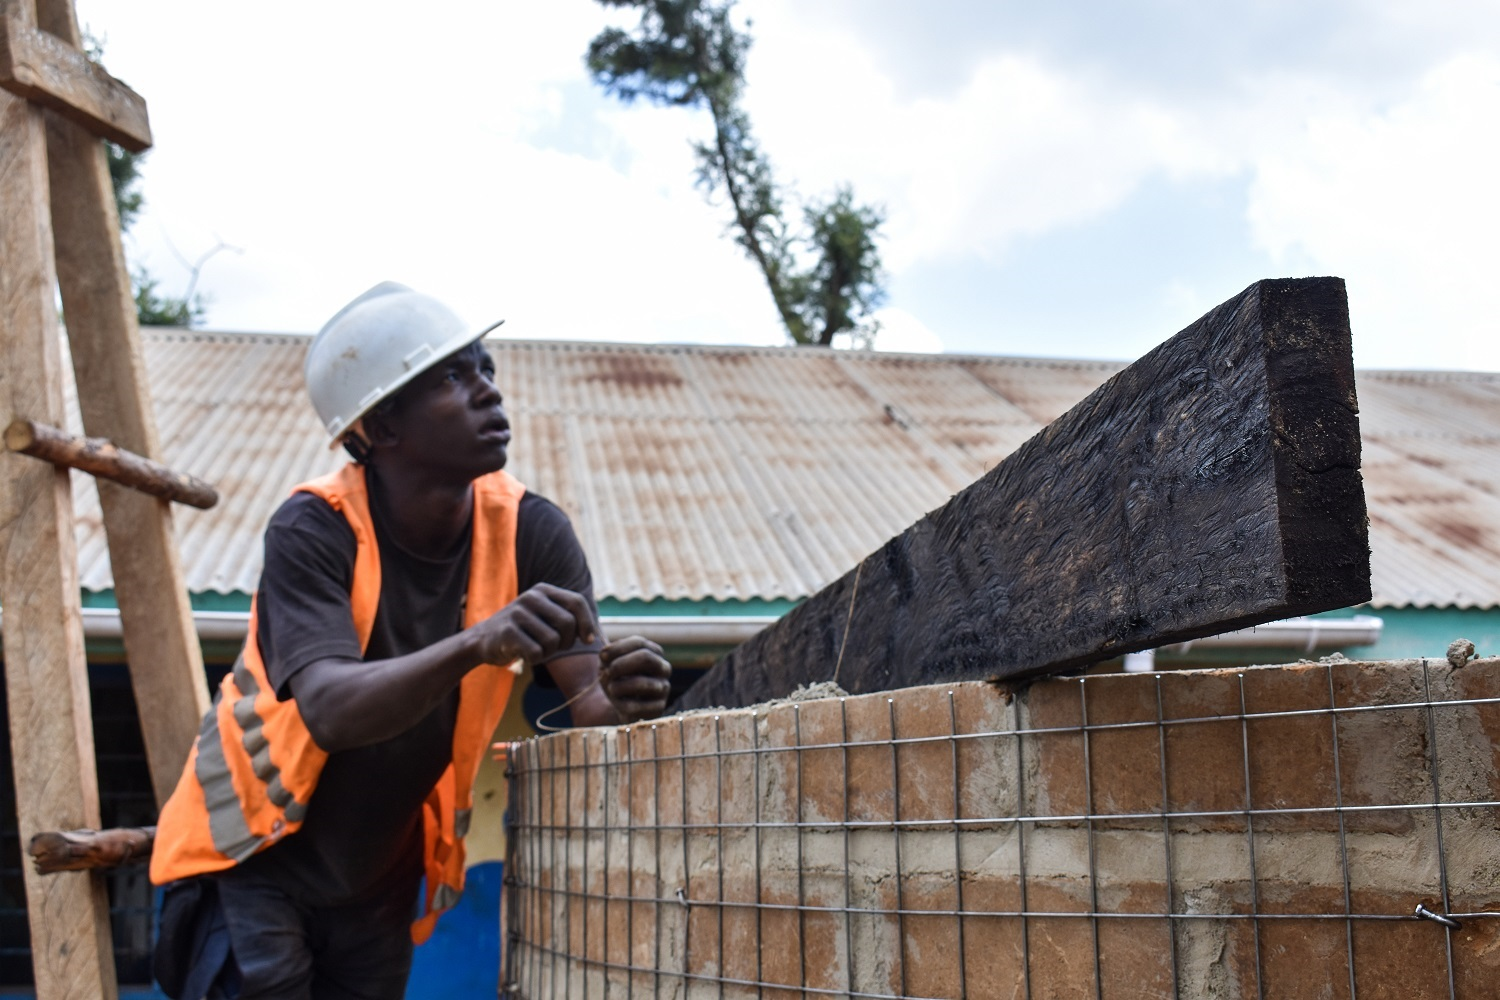 Roofing the water tank